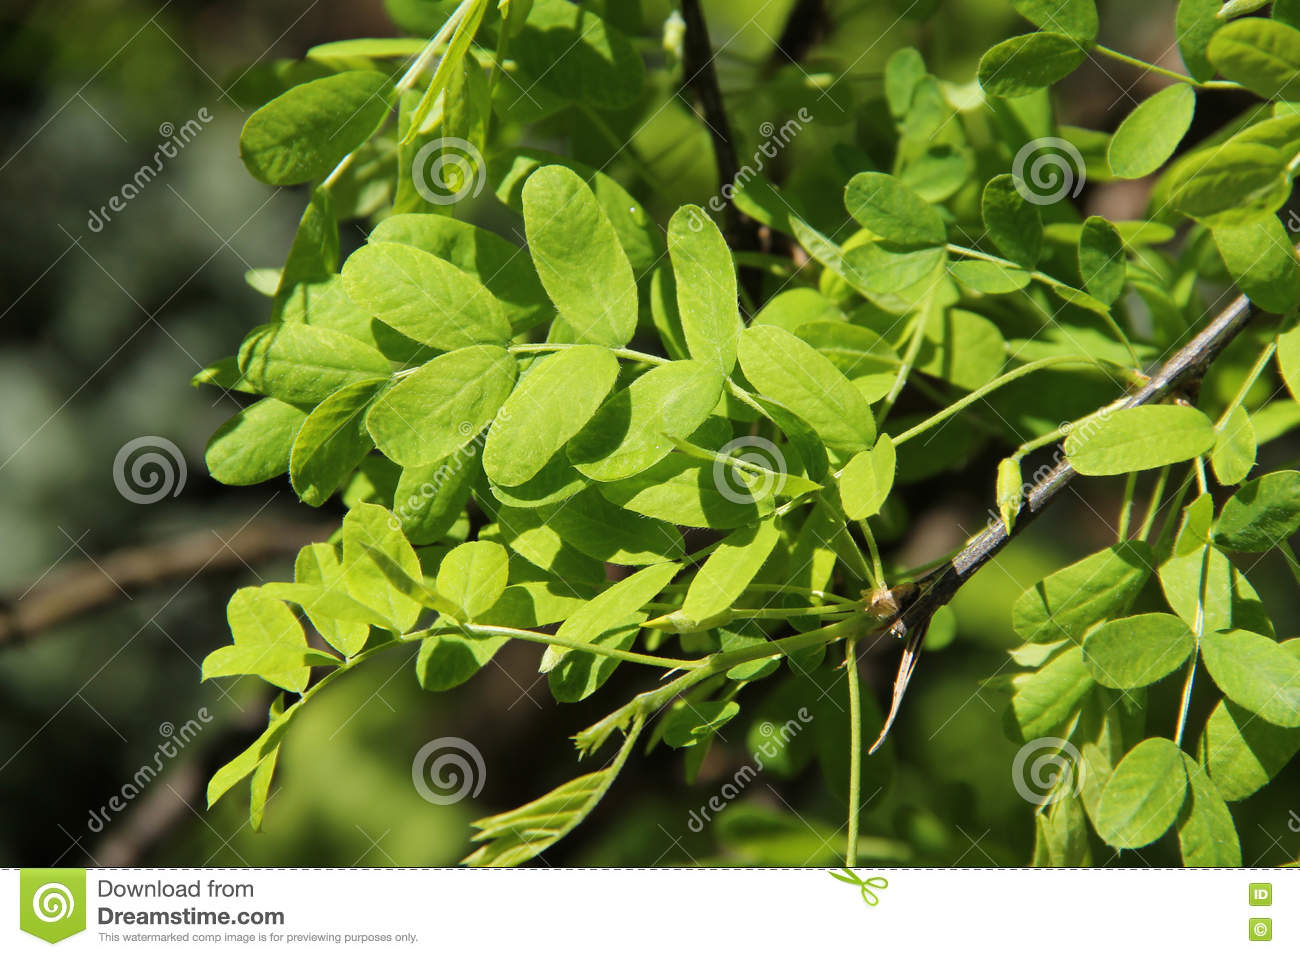 Leaves Of Acacia Tree Stock Photo Image Of Ecology Plant 71177956